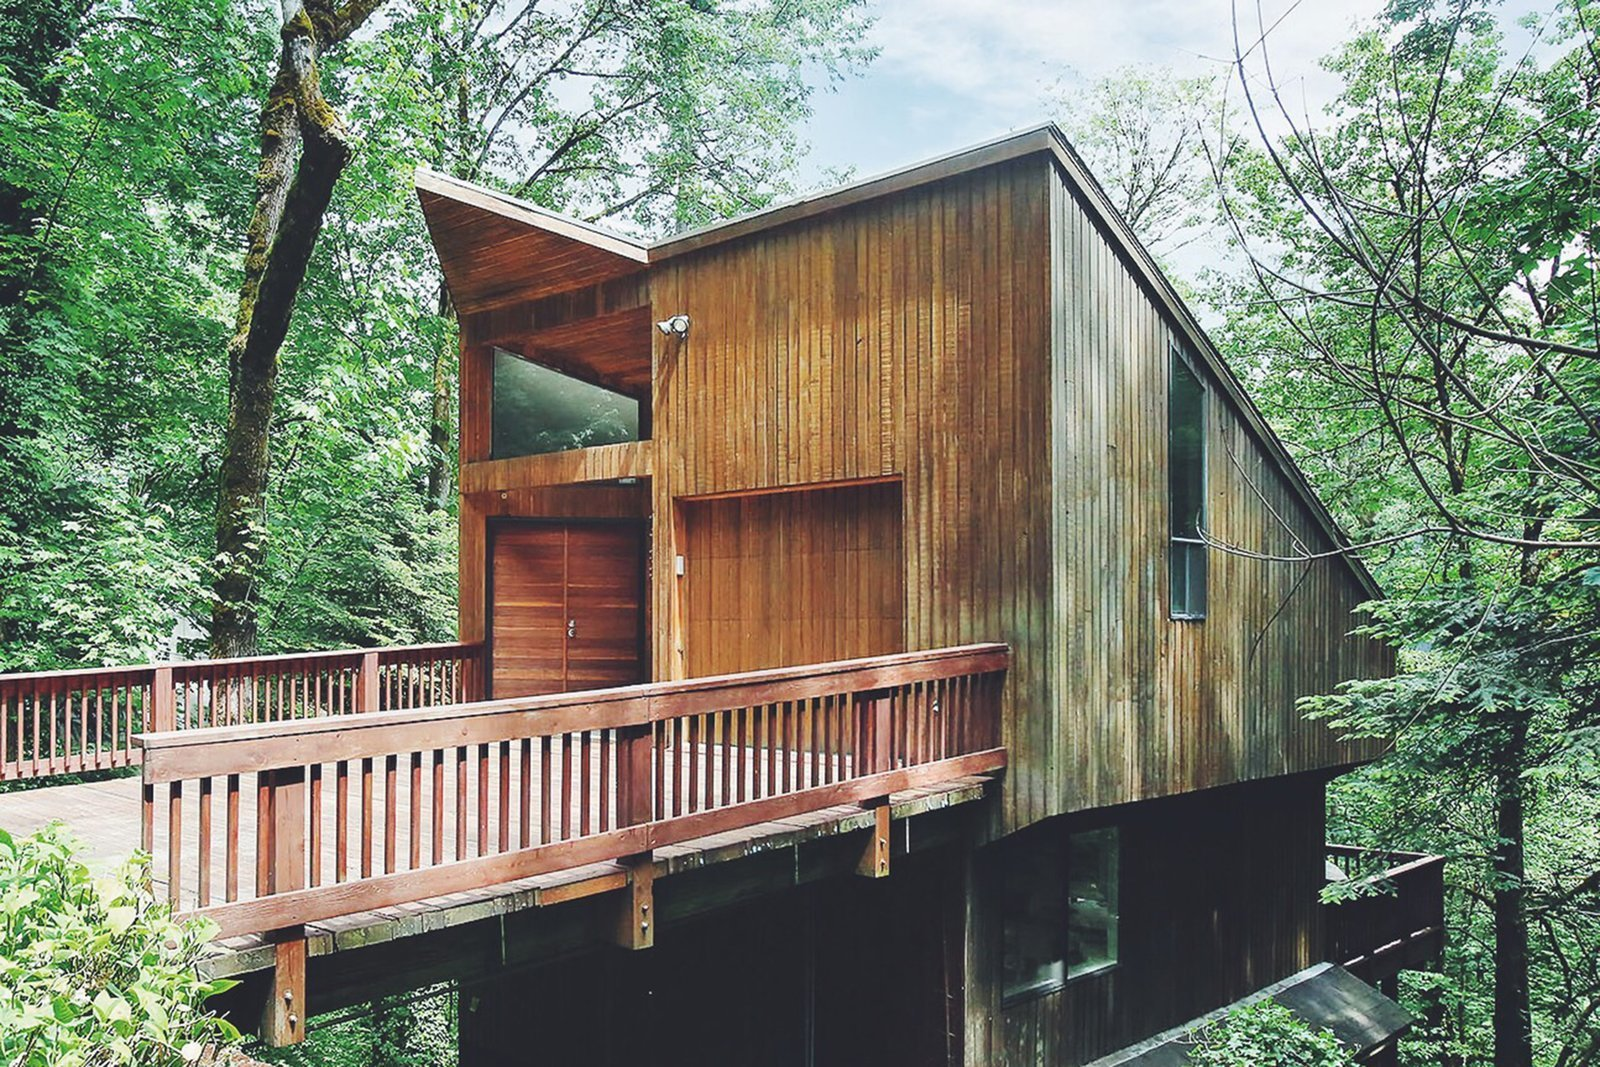 This Tree House For Rent Near Downtown Portland Doubles As an Art Platform